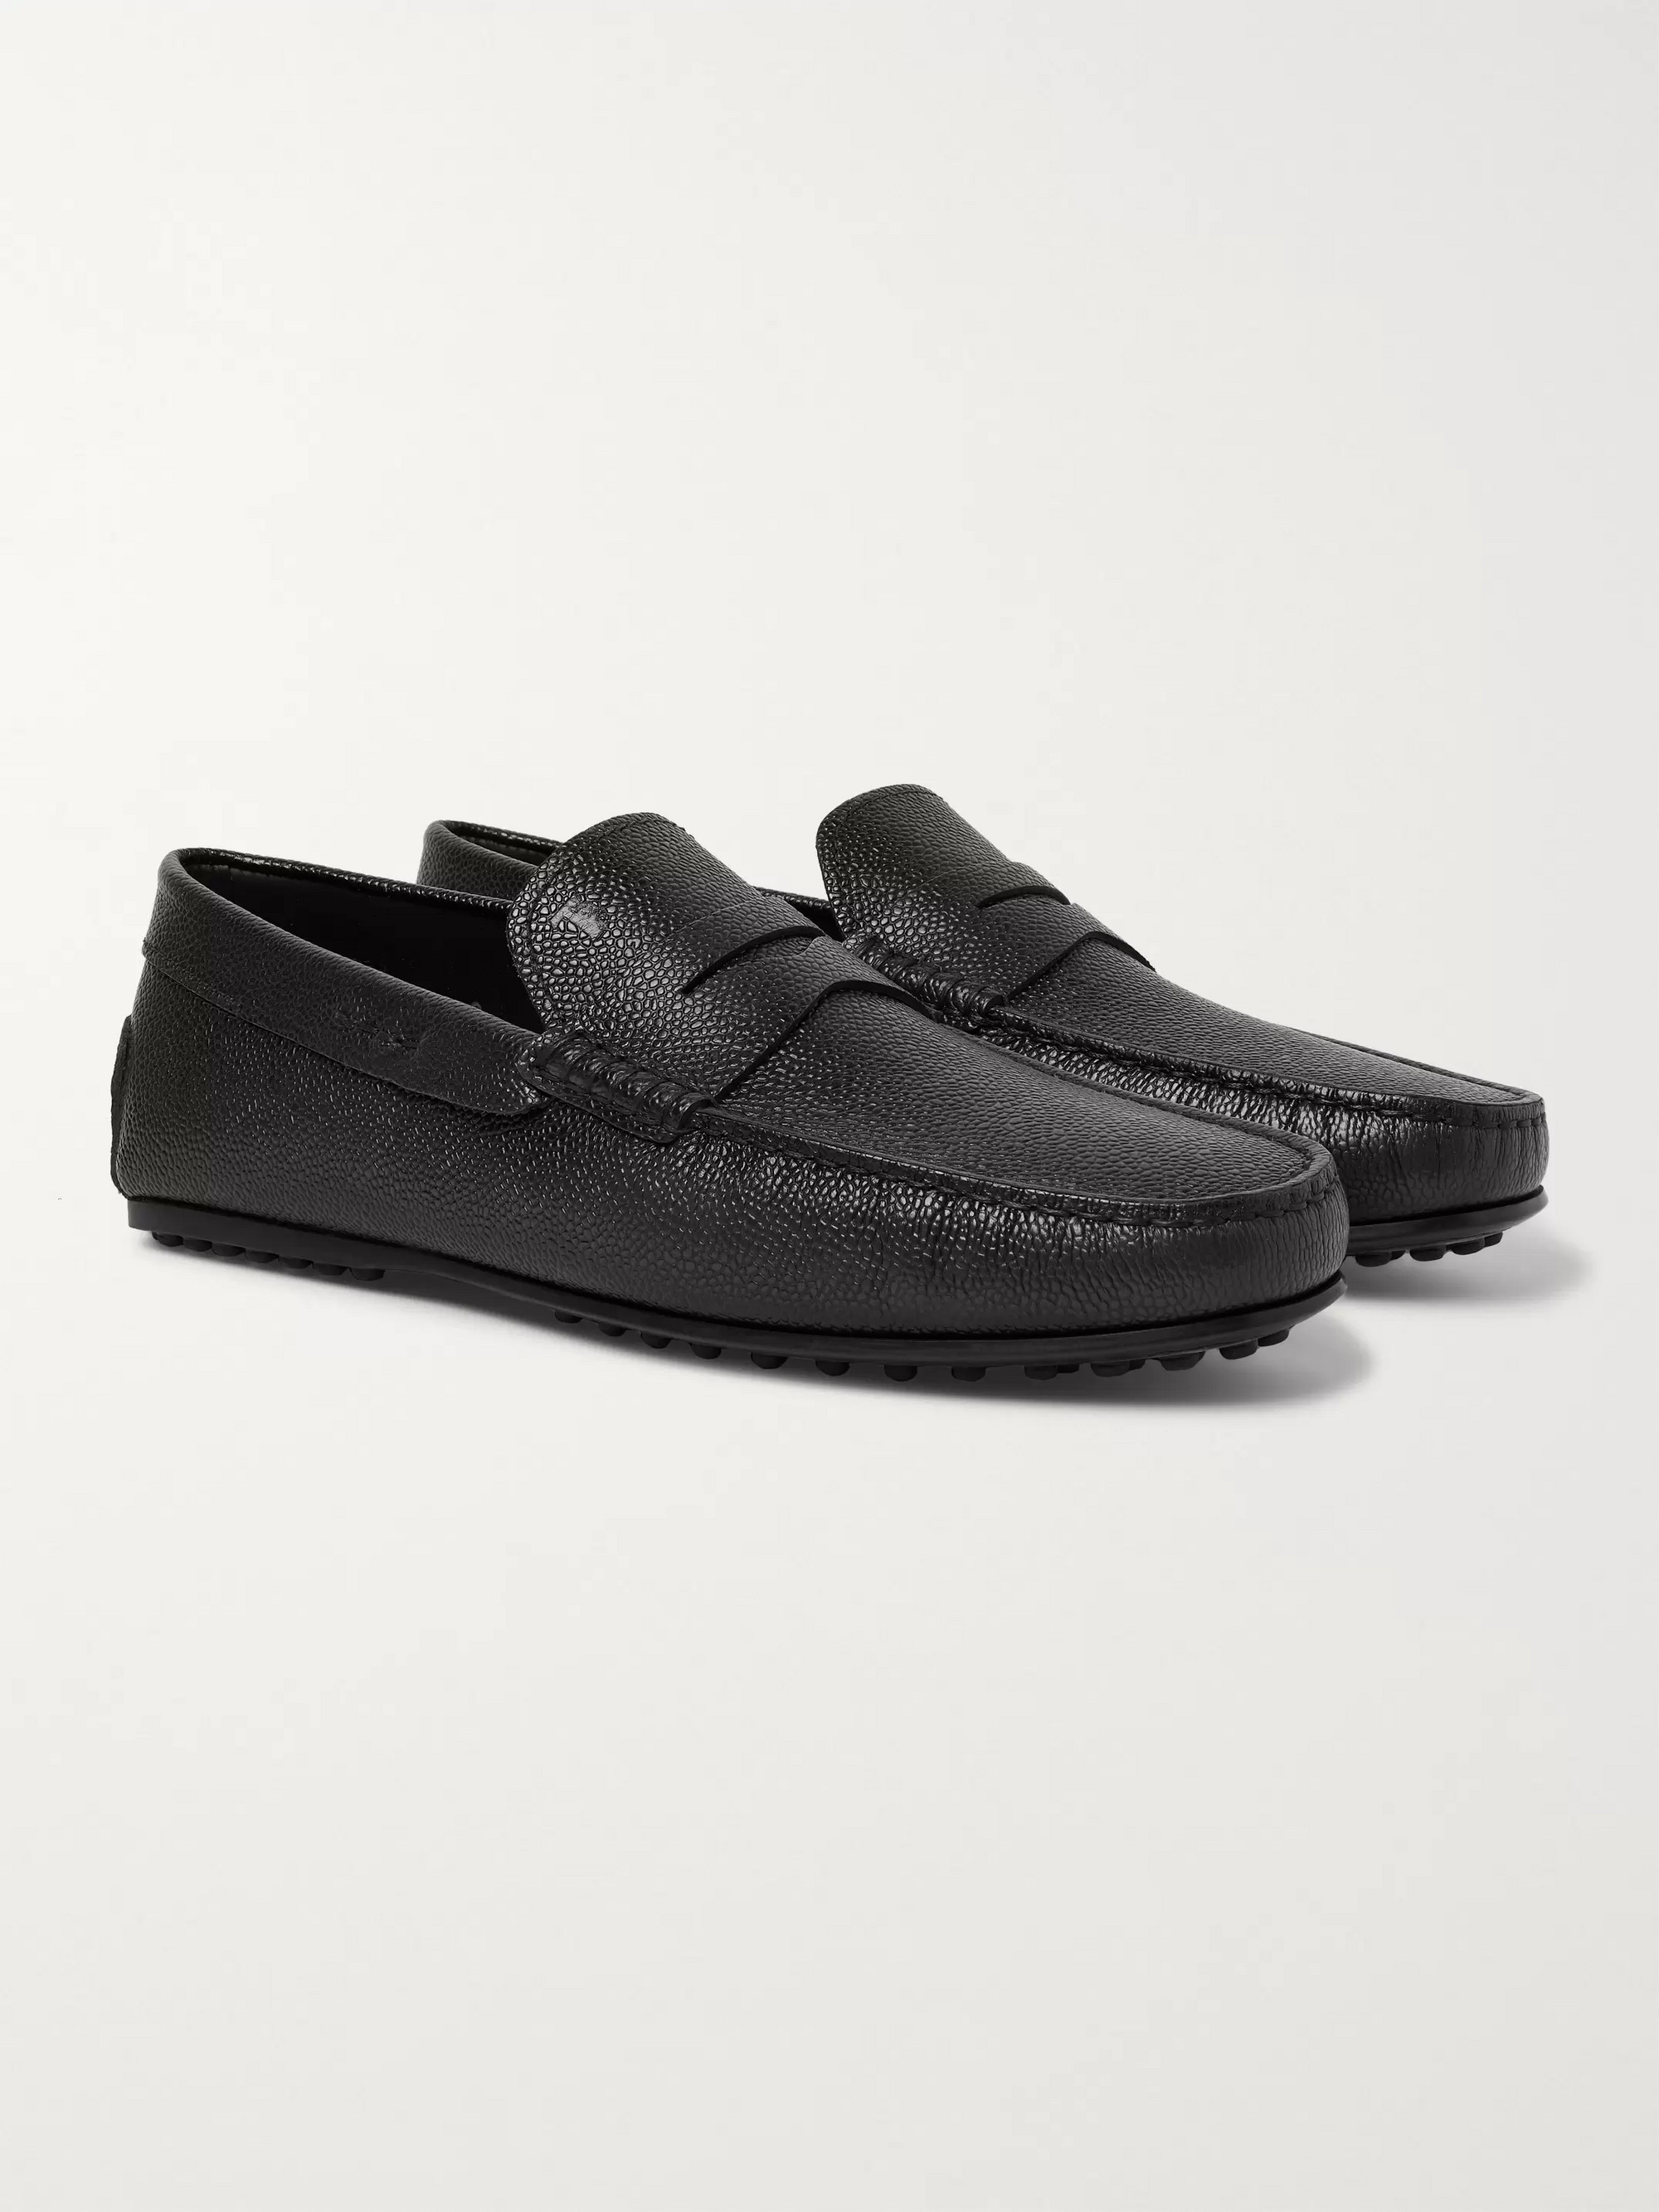 Tod's City Gommino Pebble-Grain Leather Penny Loafers